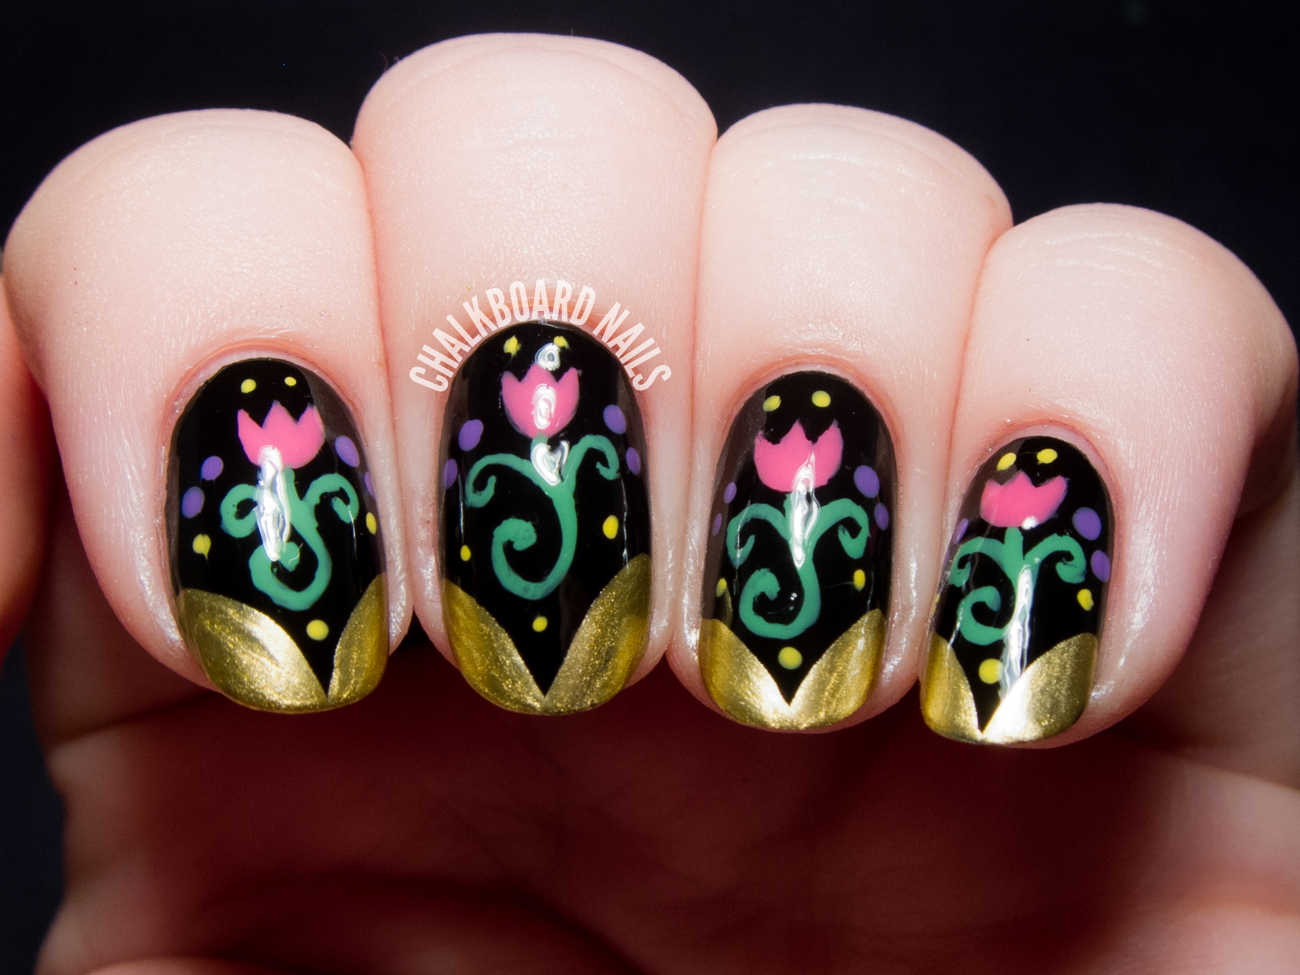 Anna-inspired Frozen nail art by @chalkboardnails